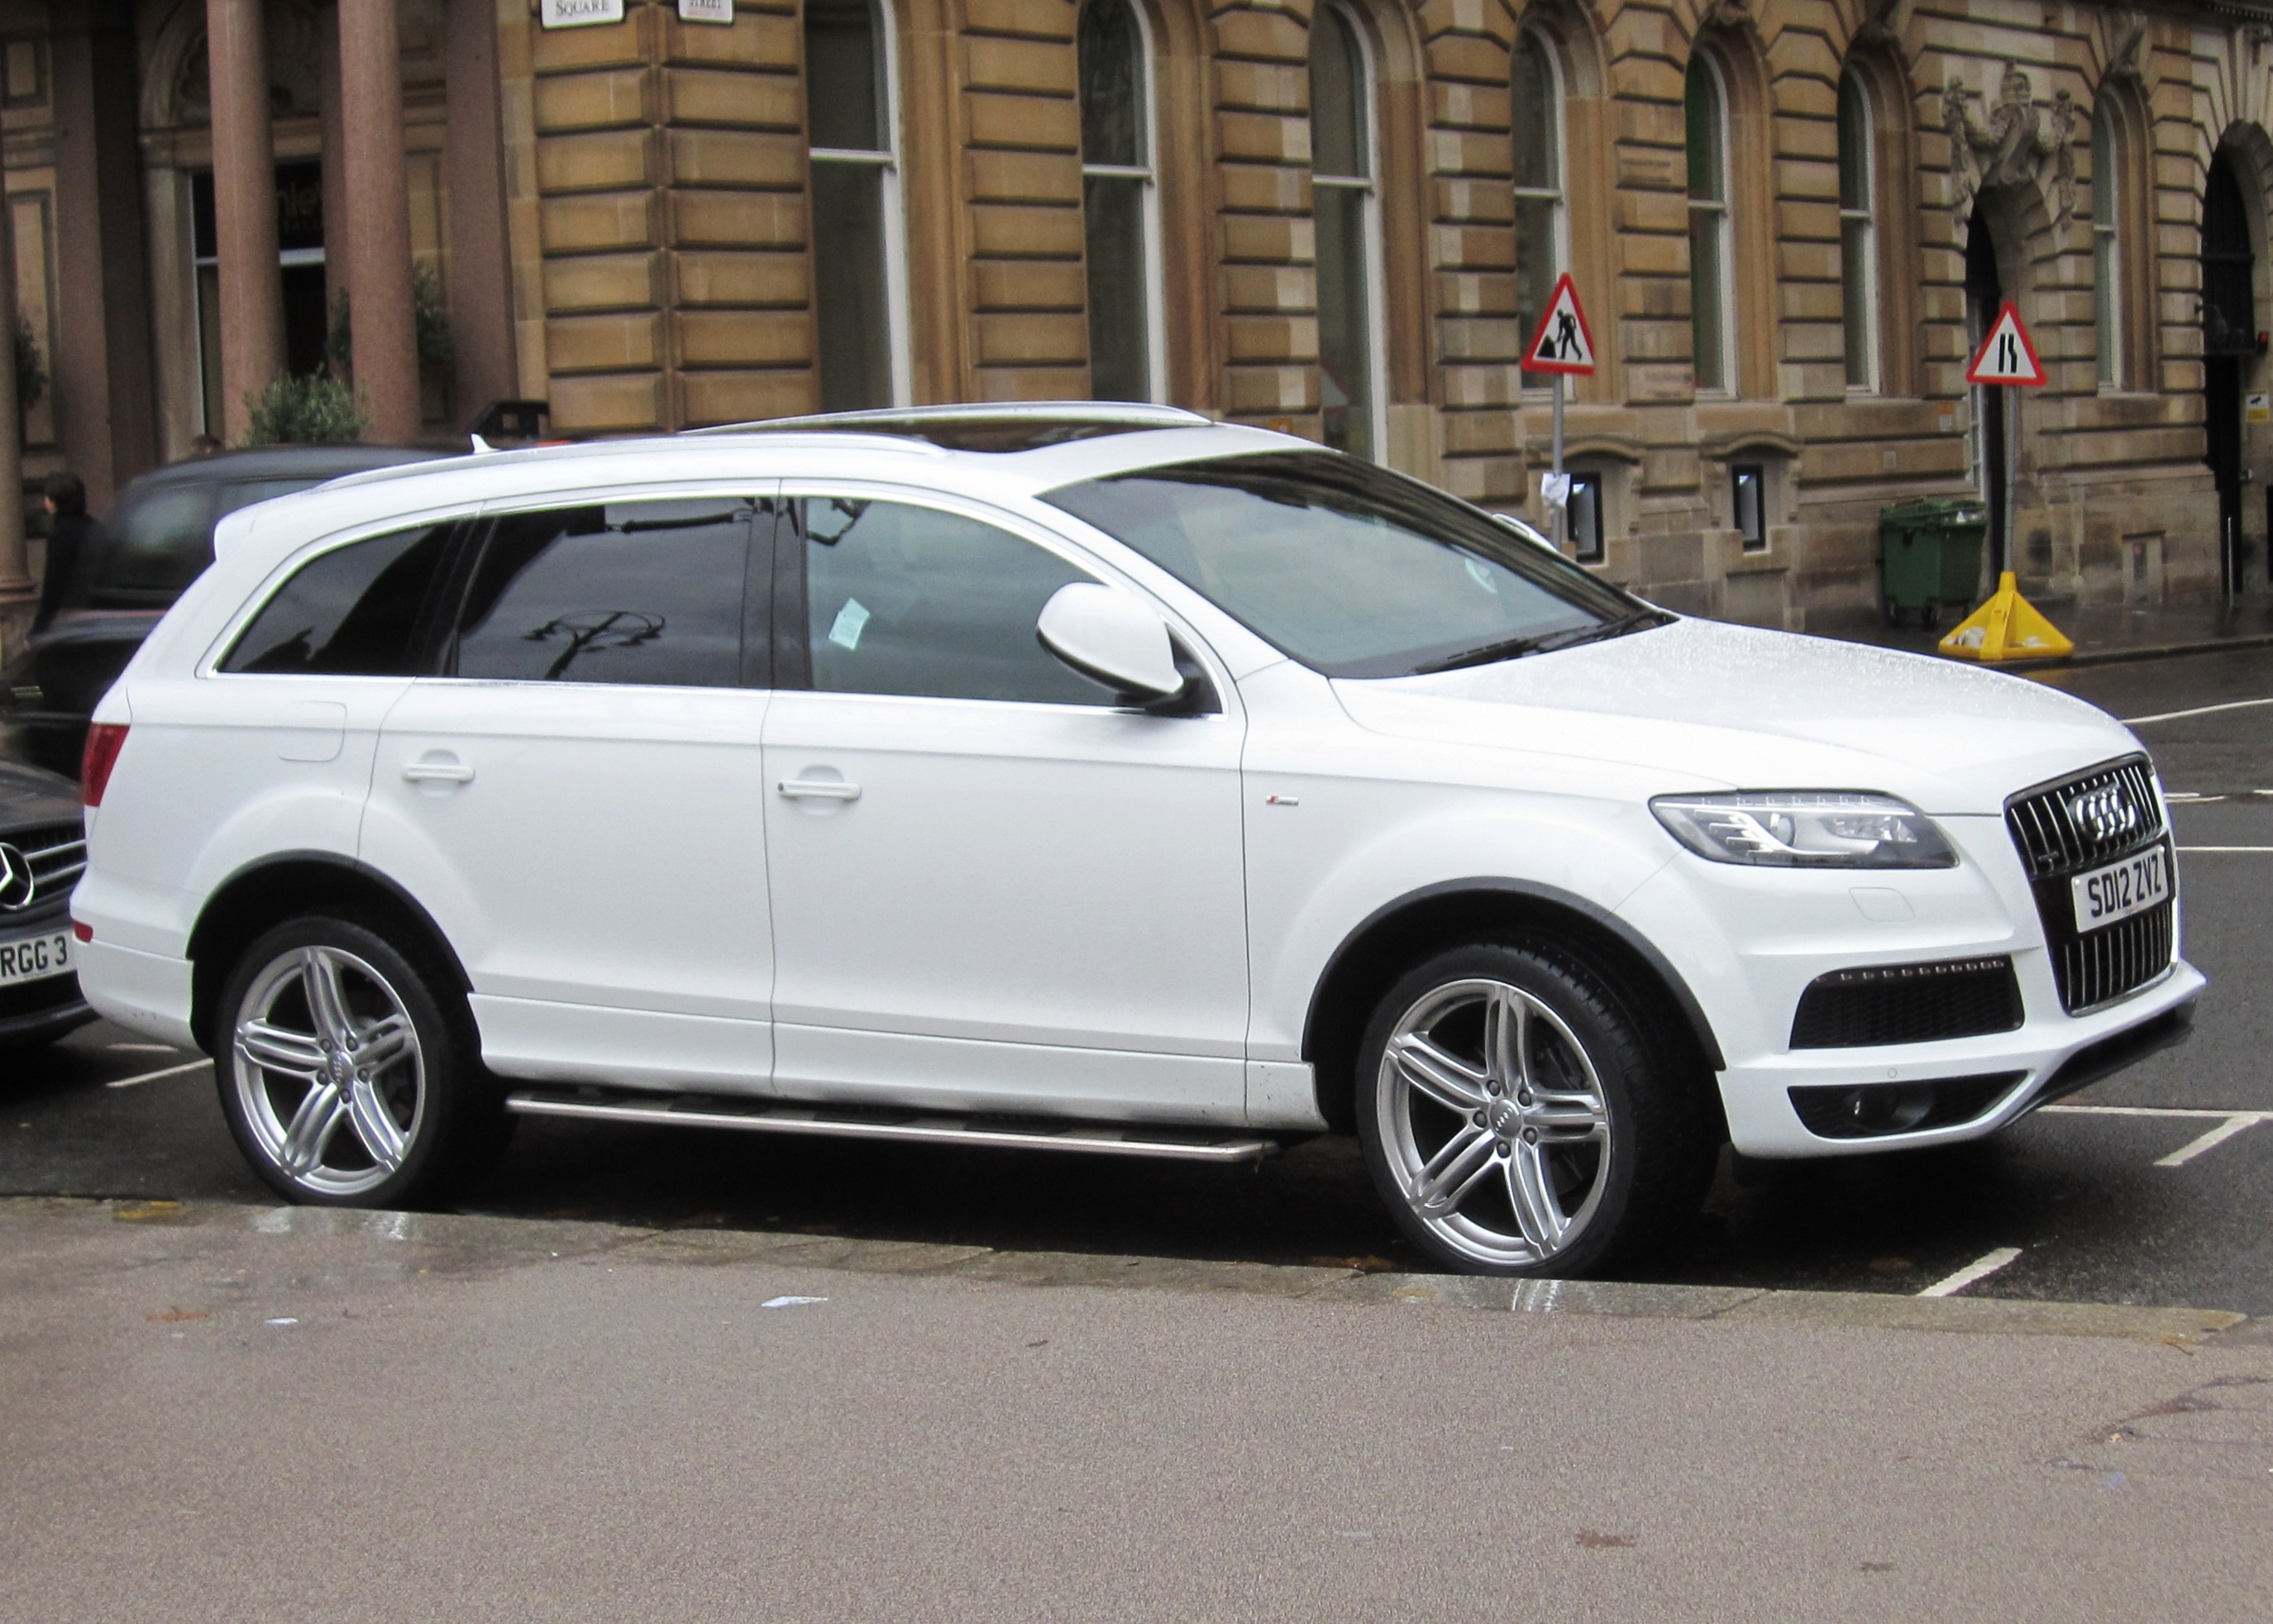 file audi q7 3 0 tdi clean diesel 2967cc registered april 2012 george square jpg. Black Bedroom Furniture Sets. Home Design Ideas